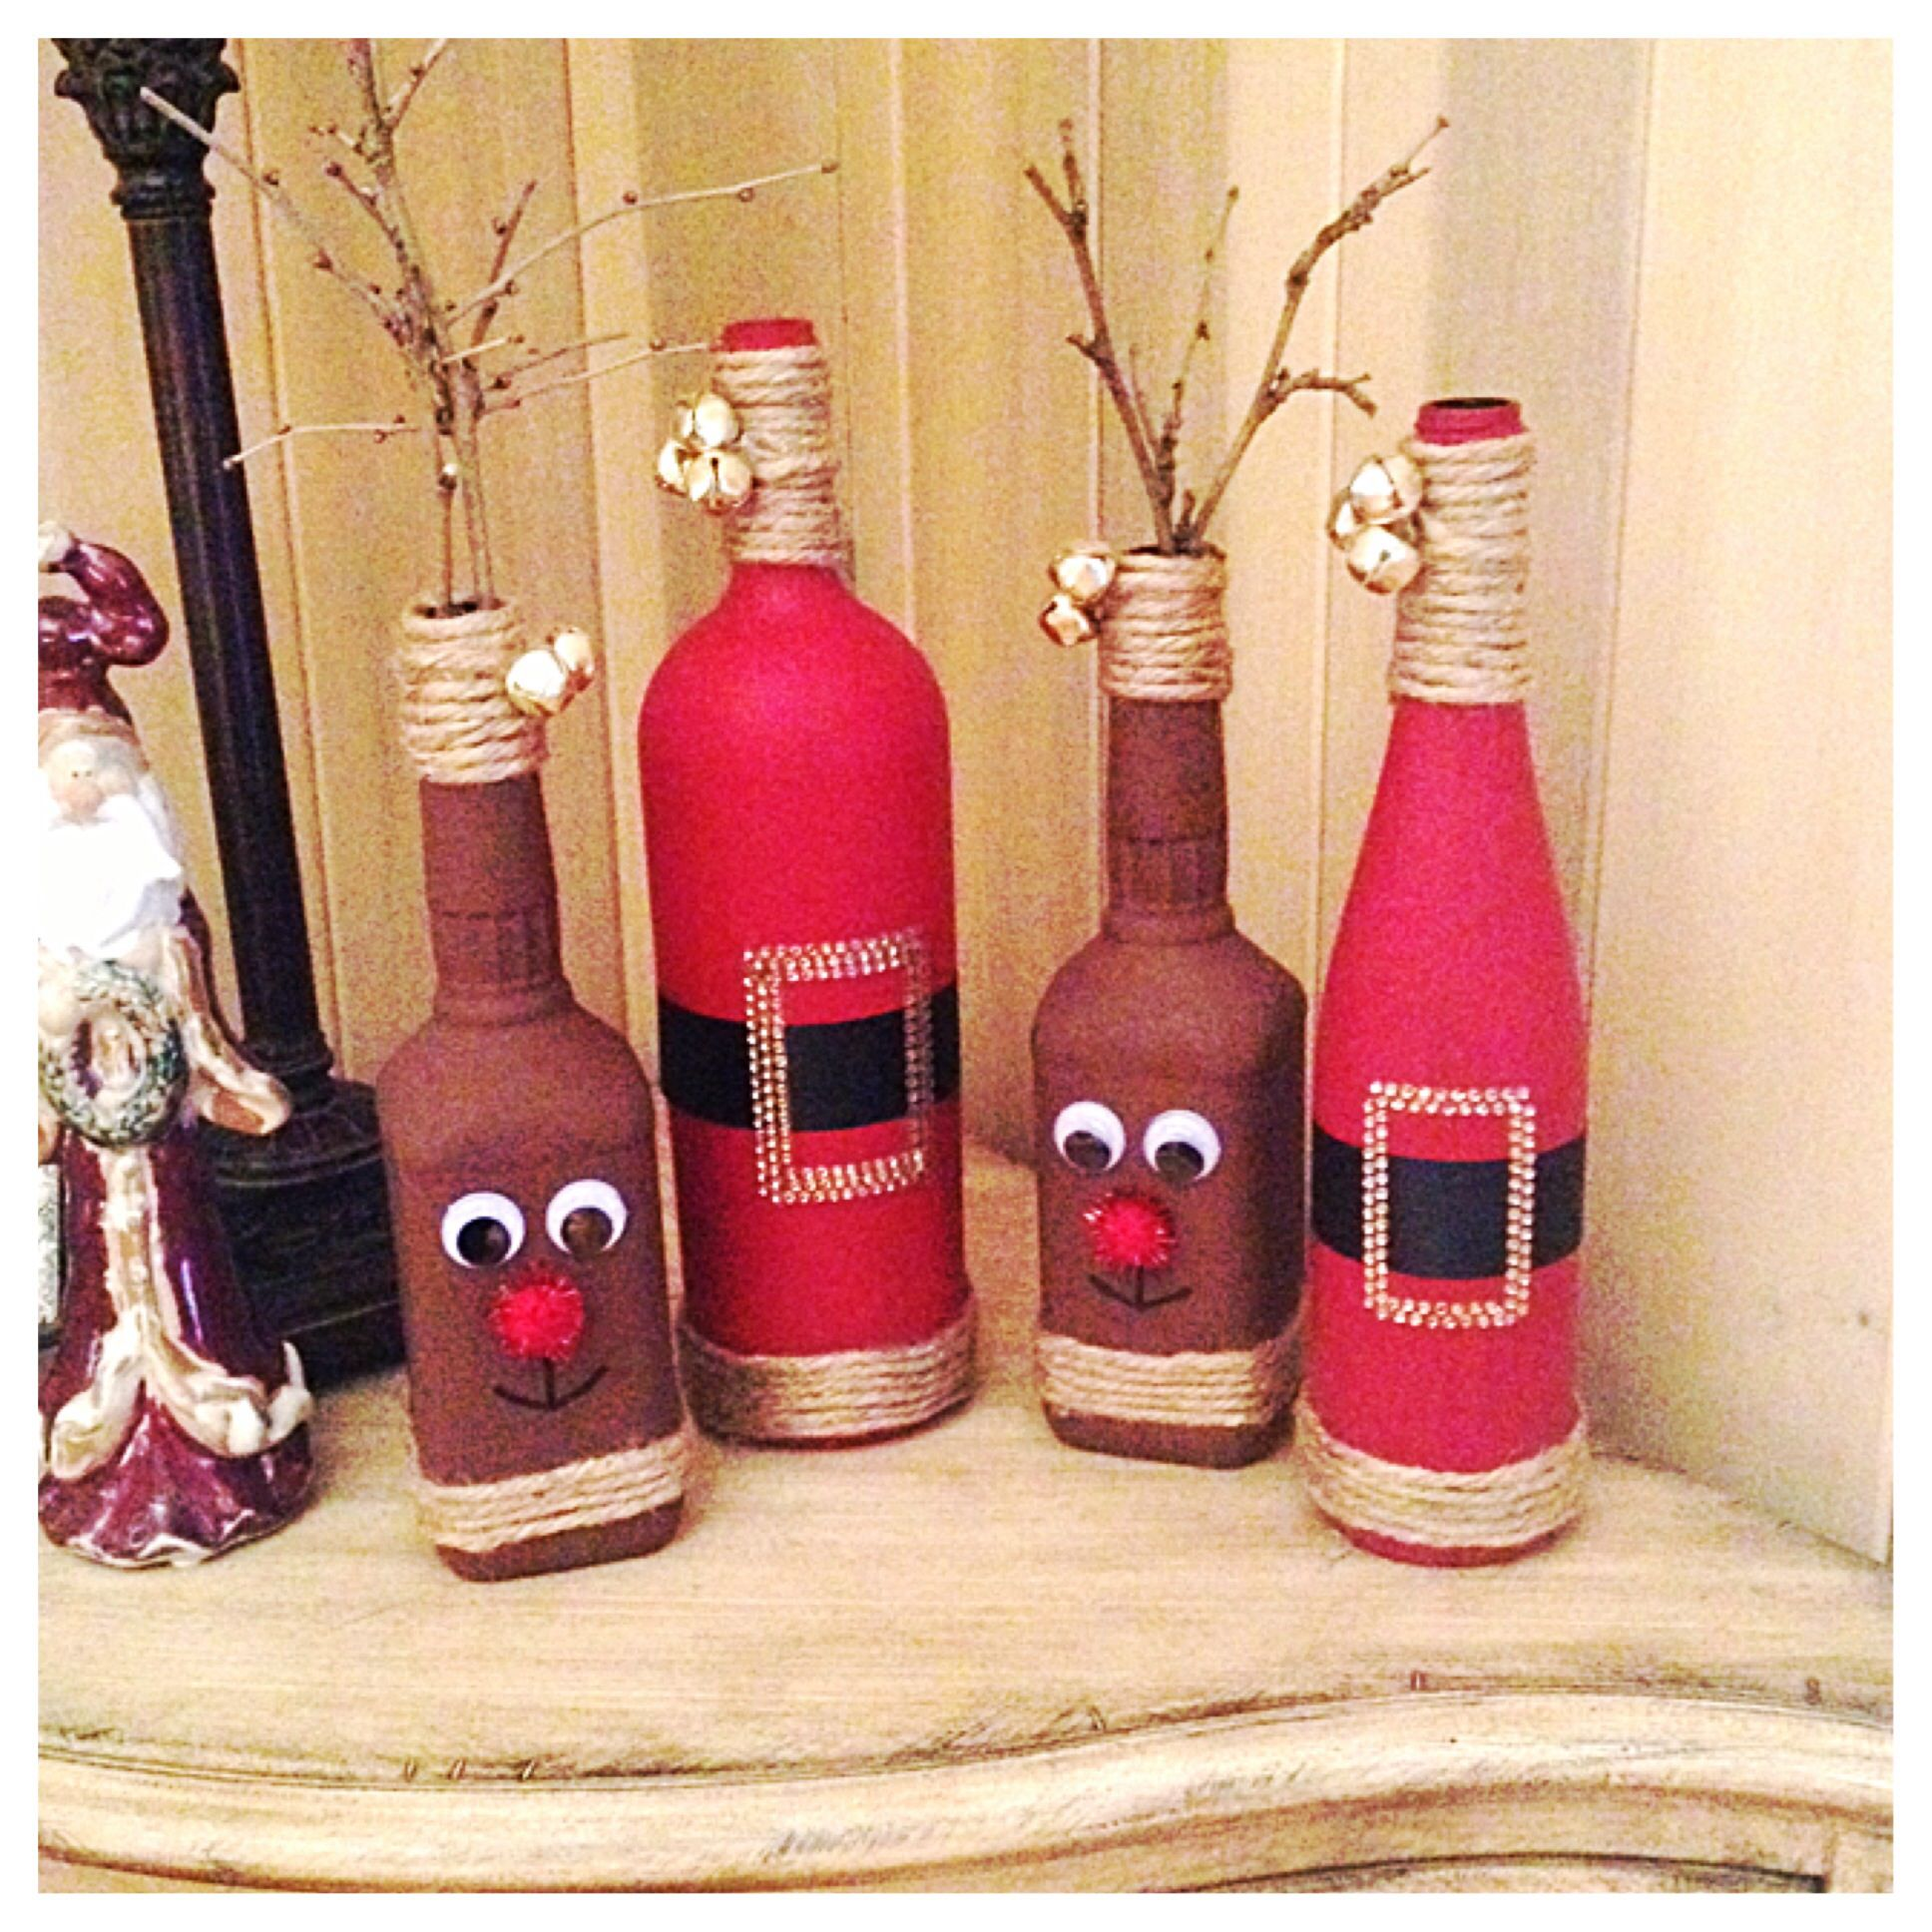 Glass Bottle Decoration For Christmas Diy Christmas Decorreindeer From Old Whiskey Bottles And Santas